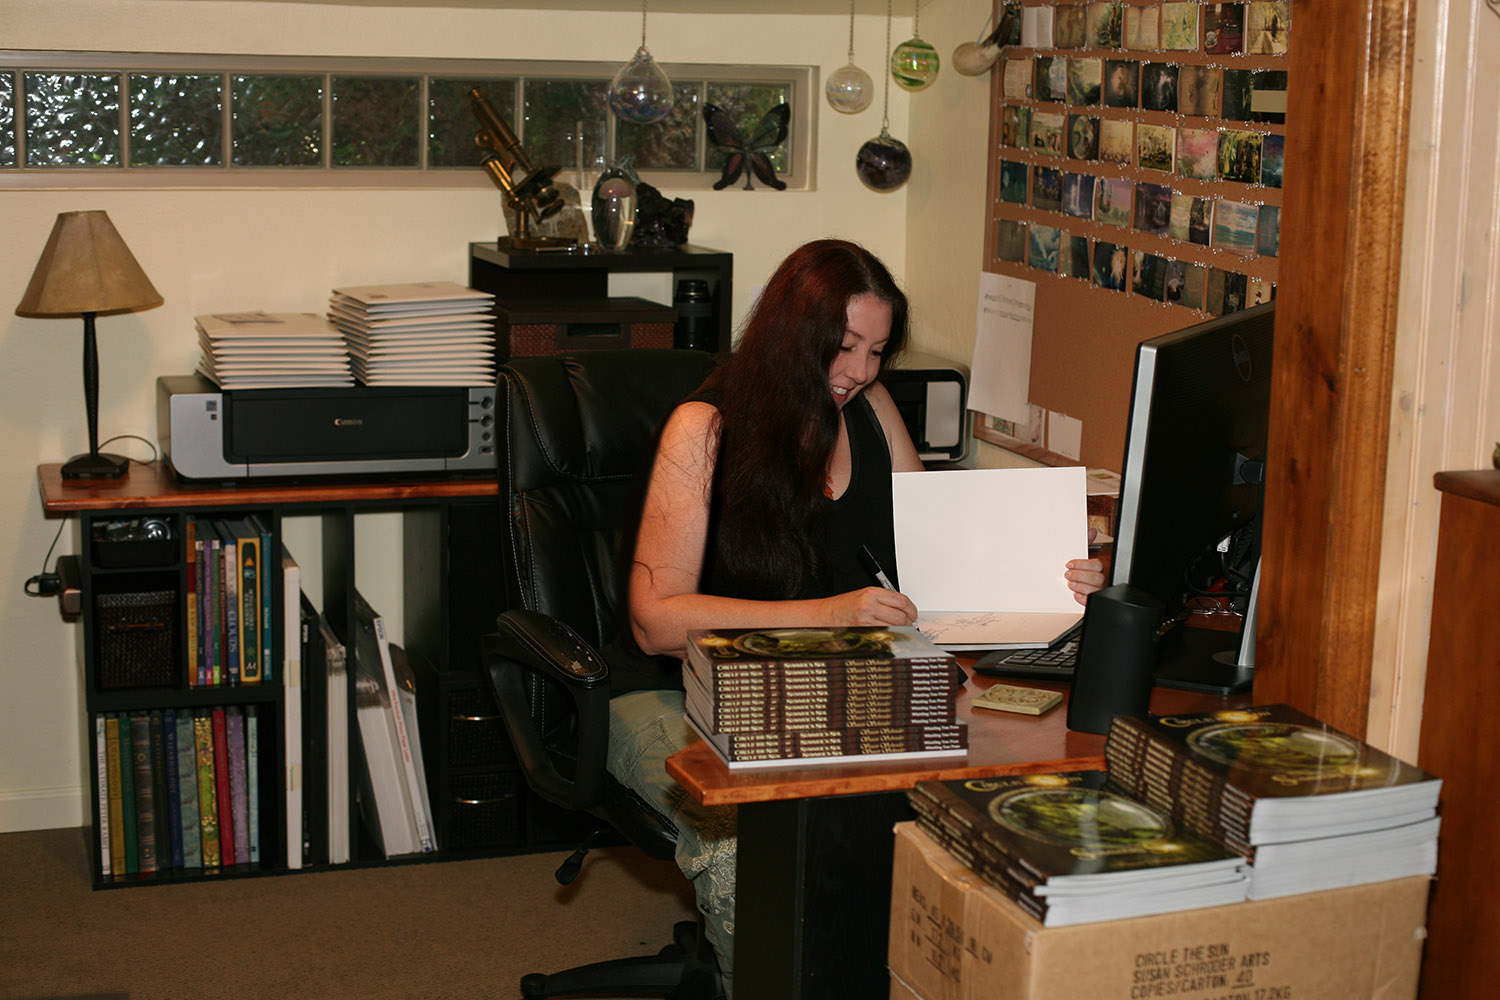 Susan happily signing and shipping books!